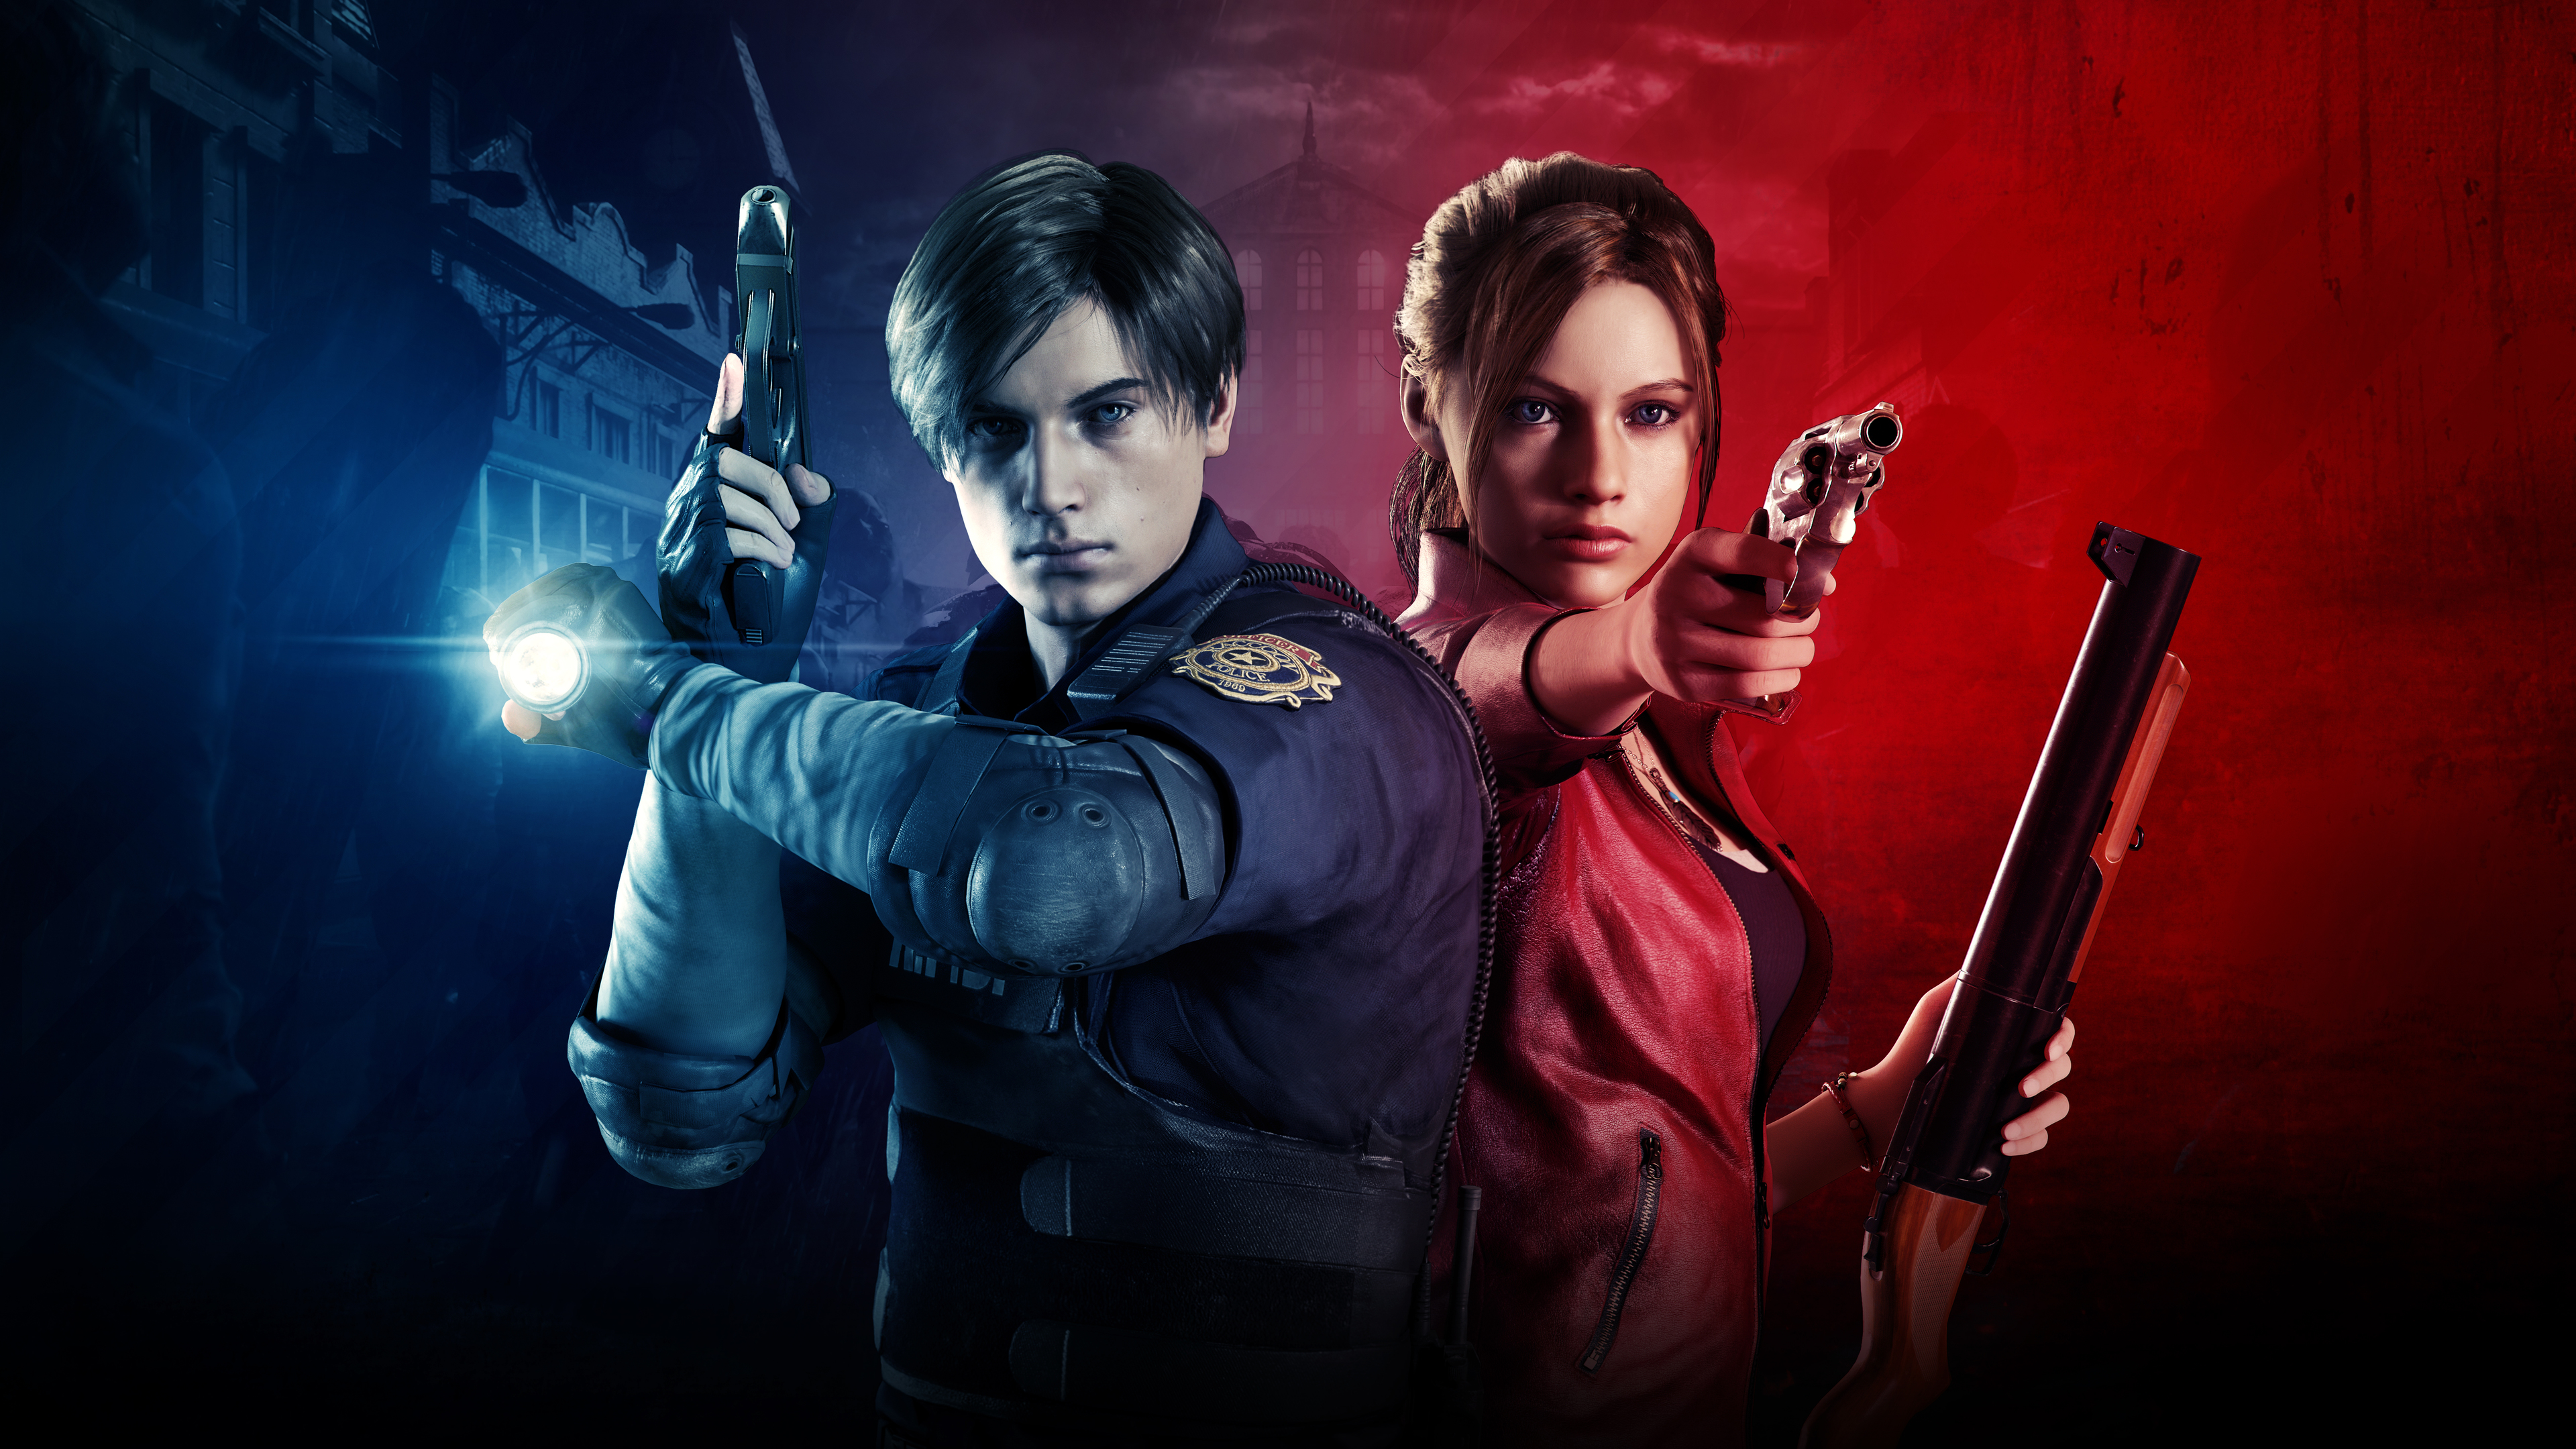 Wallpaper 4k Claire Redfield And Leon Resident Evil 2 4k 2019